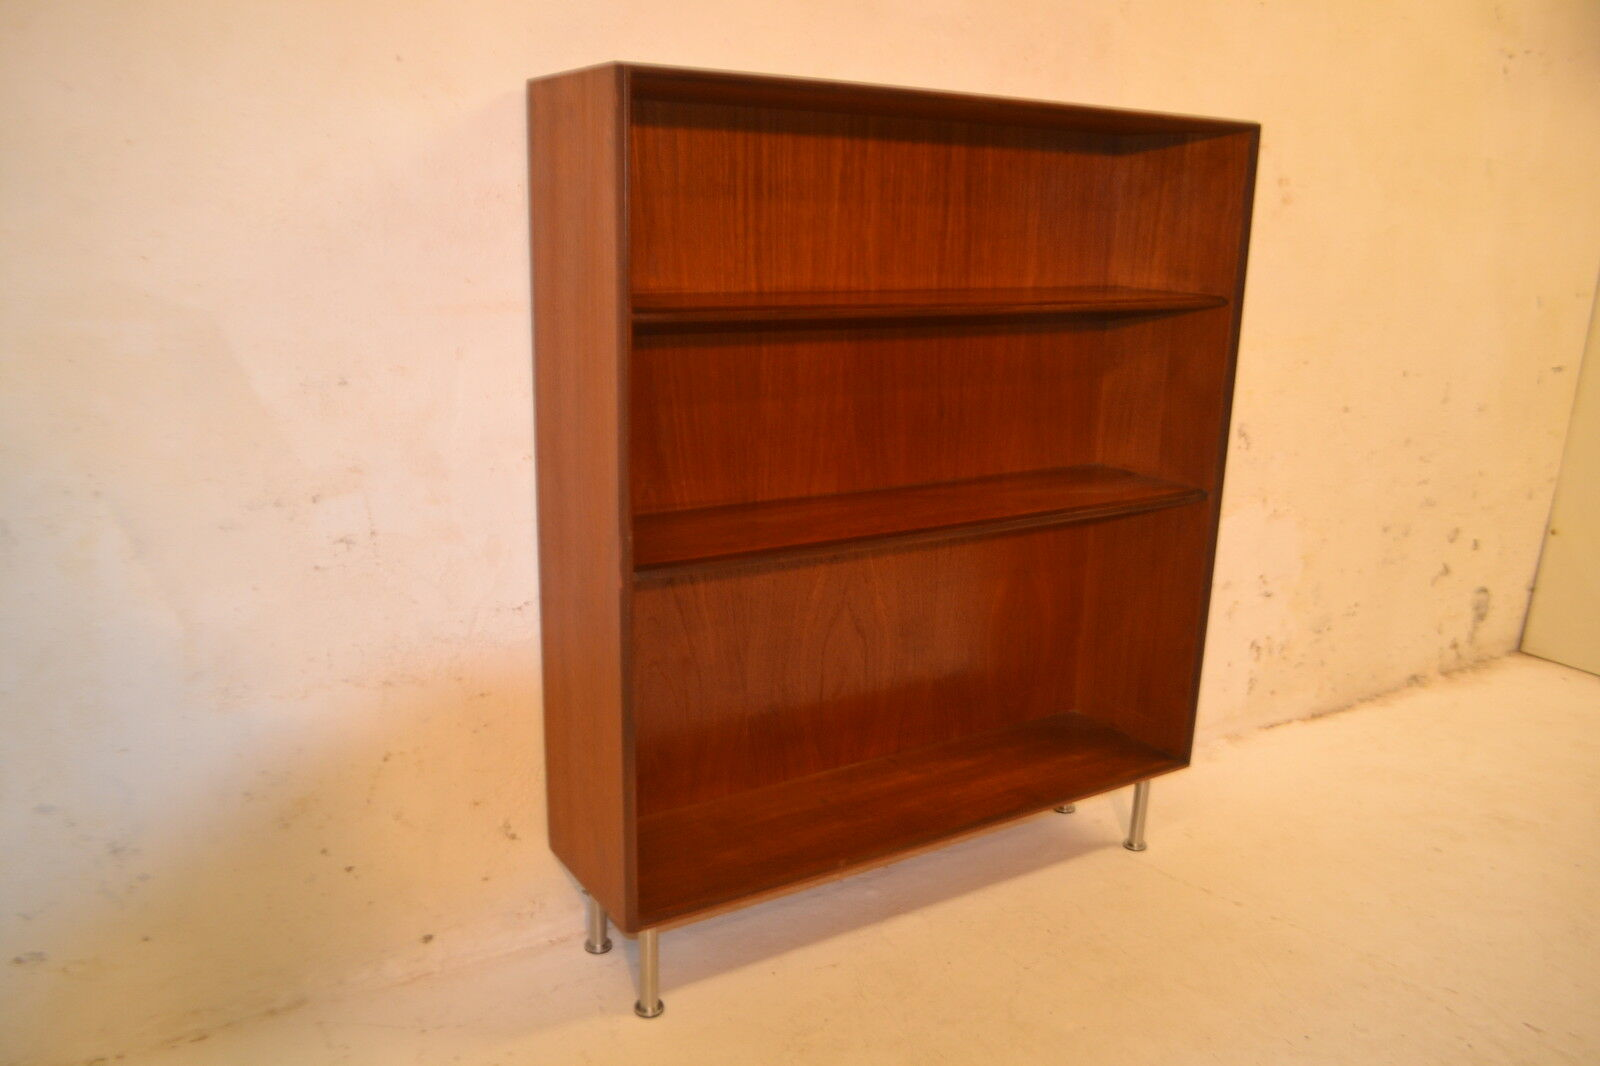 Stunning Vintage Danish Teak Kofod Larsen Storage Bookcase Display